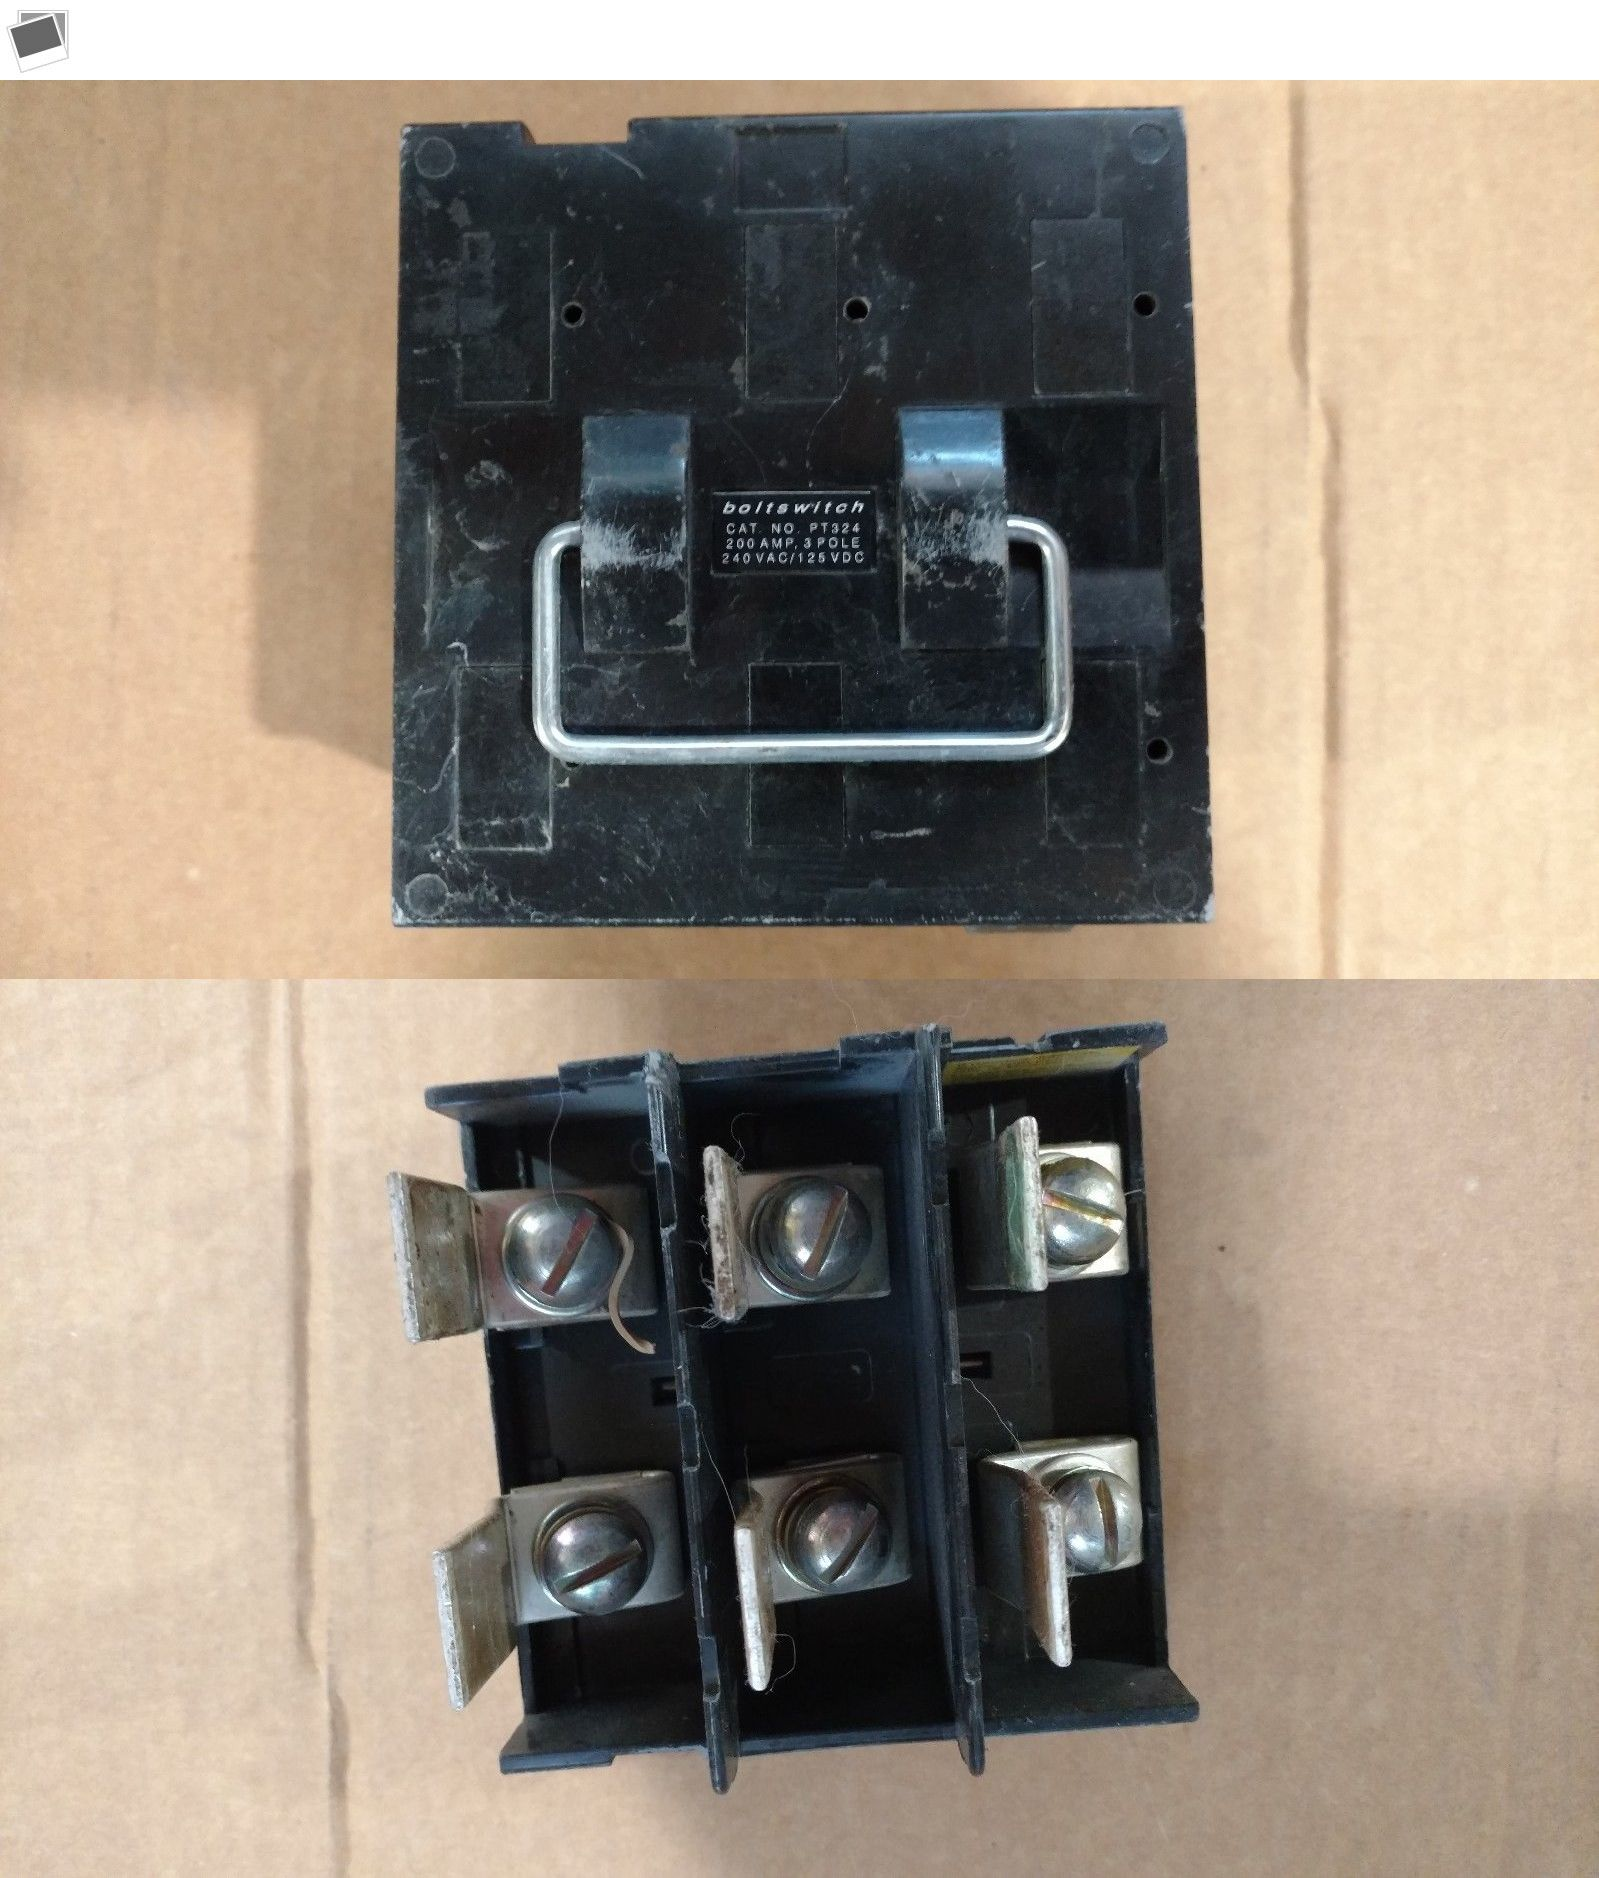 small resolution of circuit breakers and fuse boxes 20596 boltswitch pt324 fusablecircuit breakers and fuse boxes 20596 boltswitch pt324